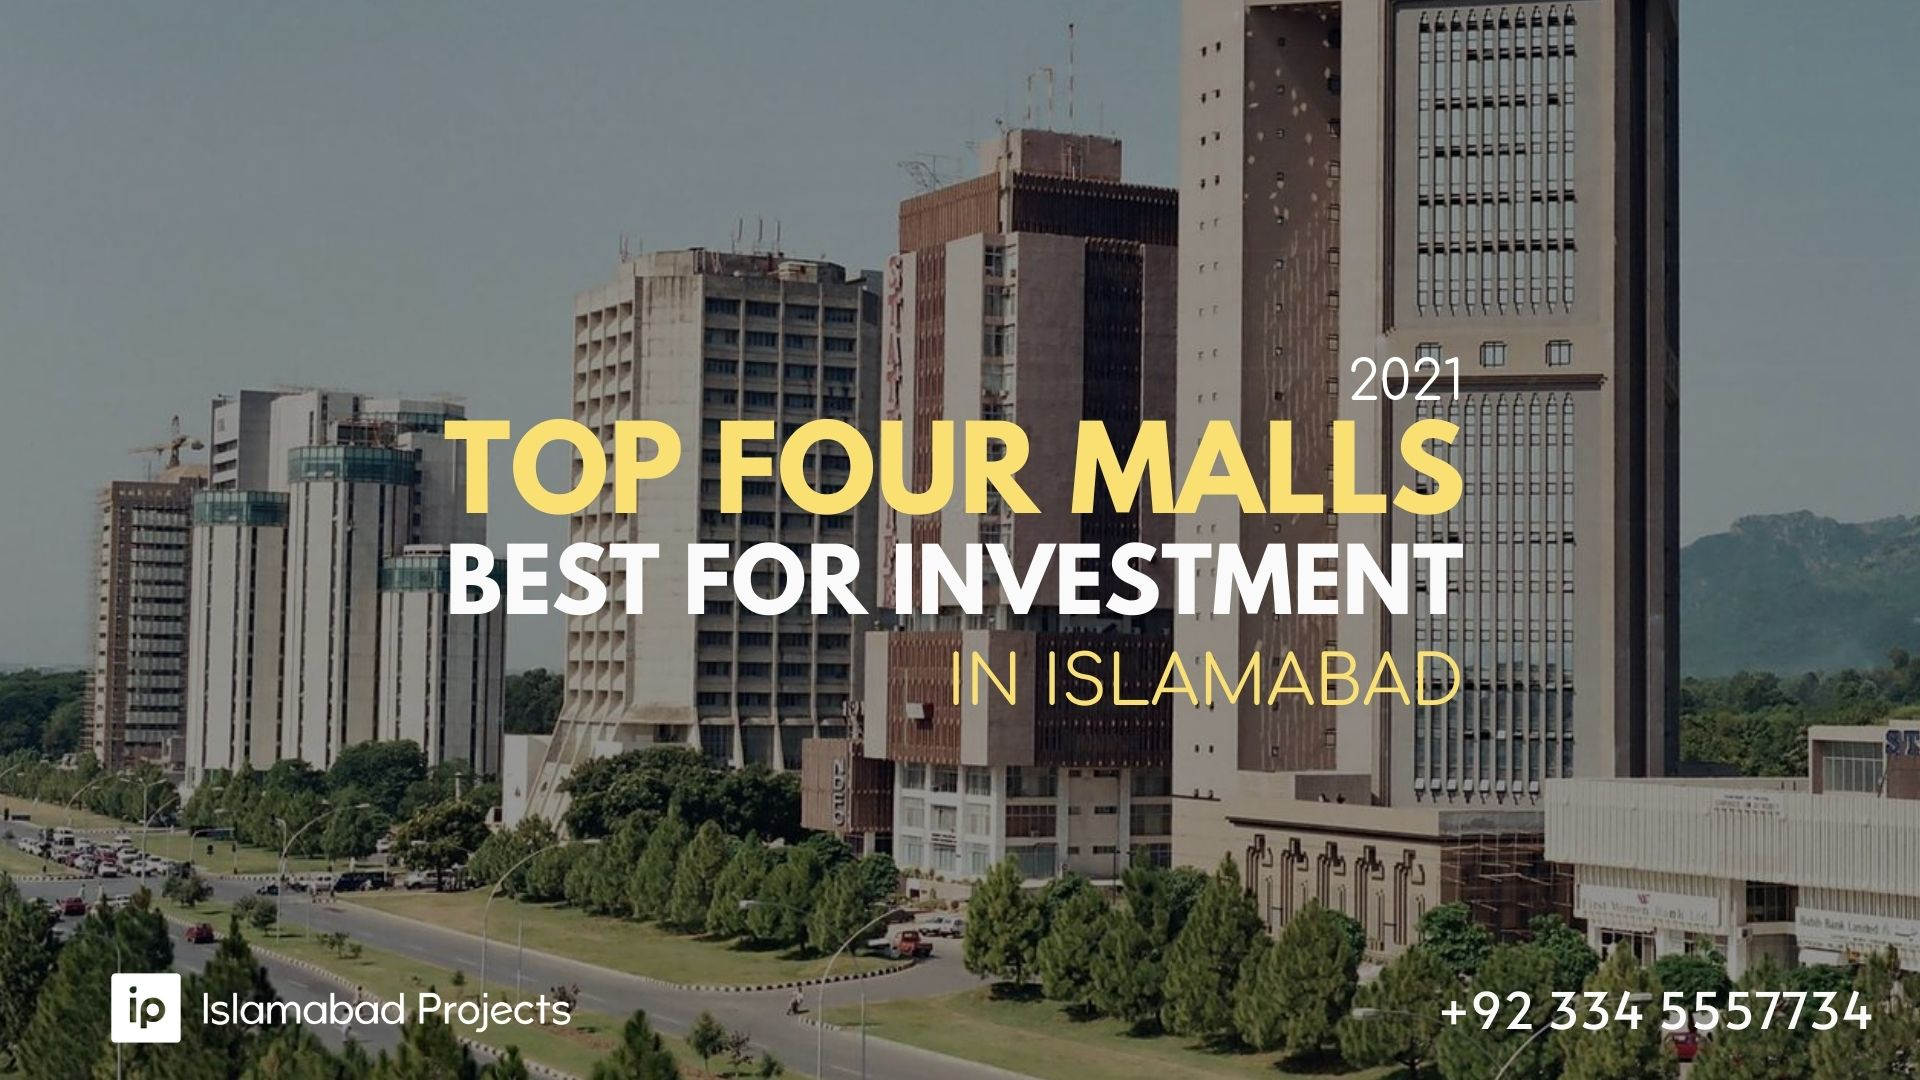 Top Four Malls in Islamabad